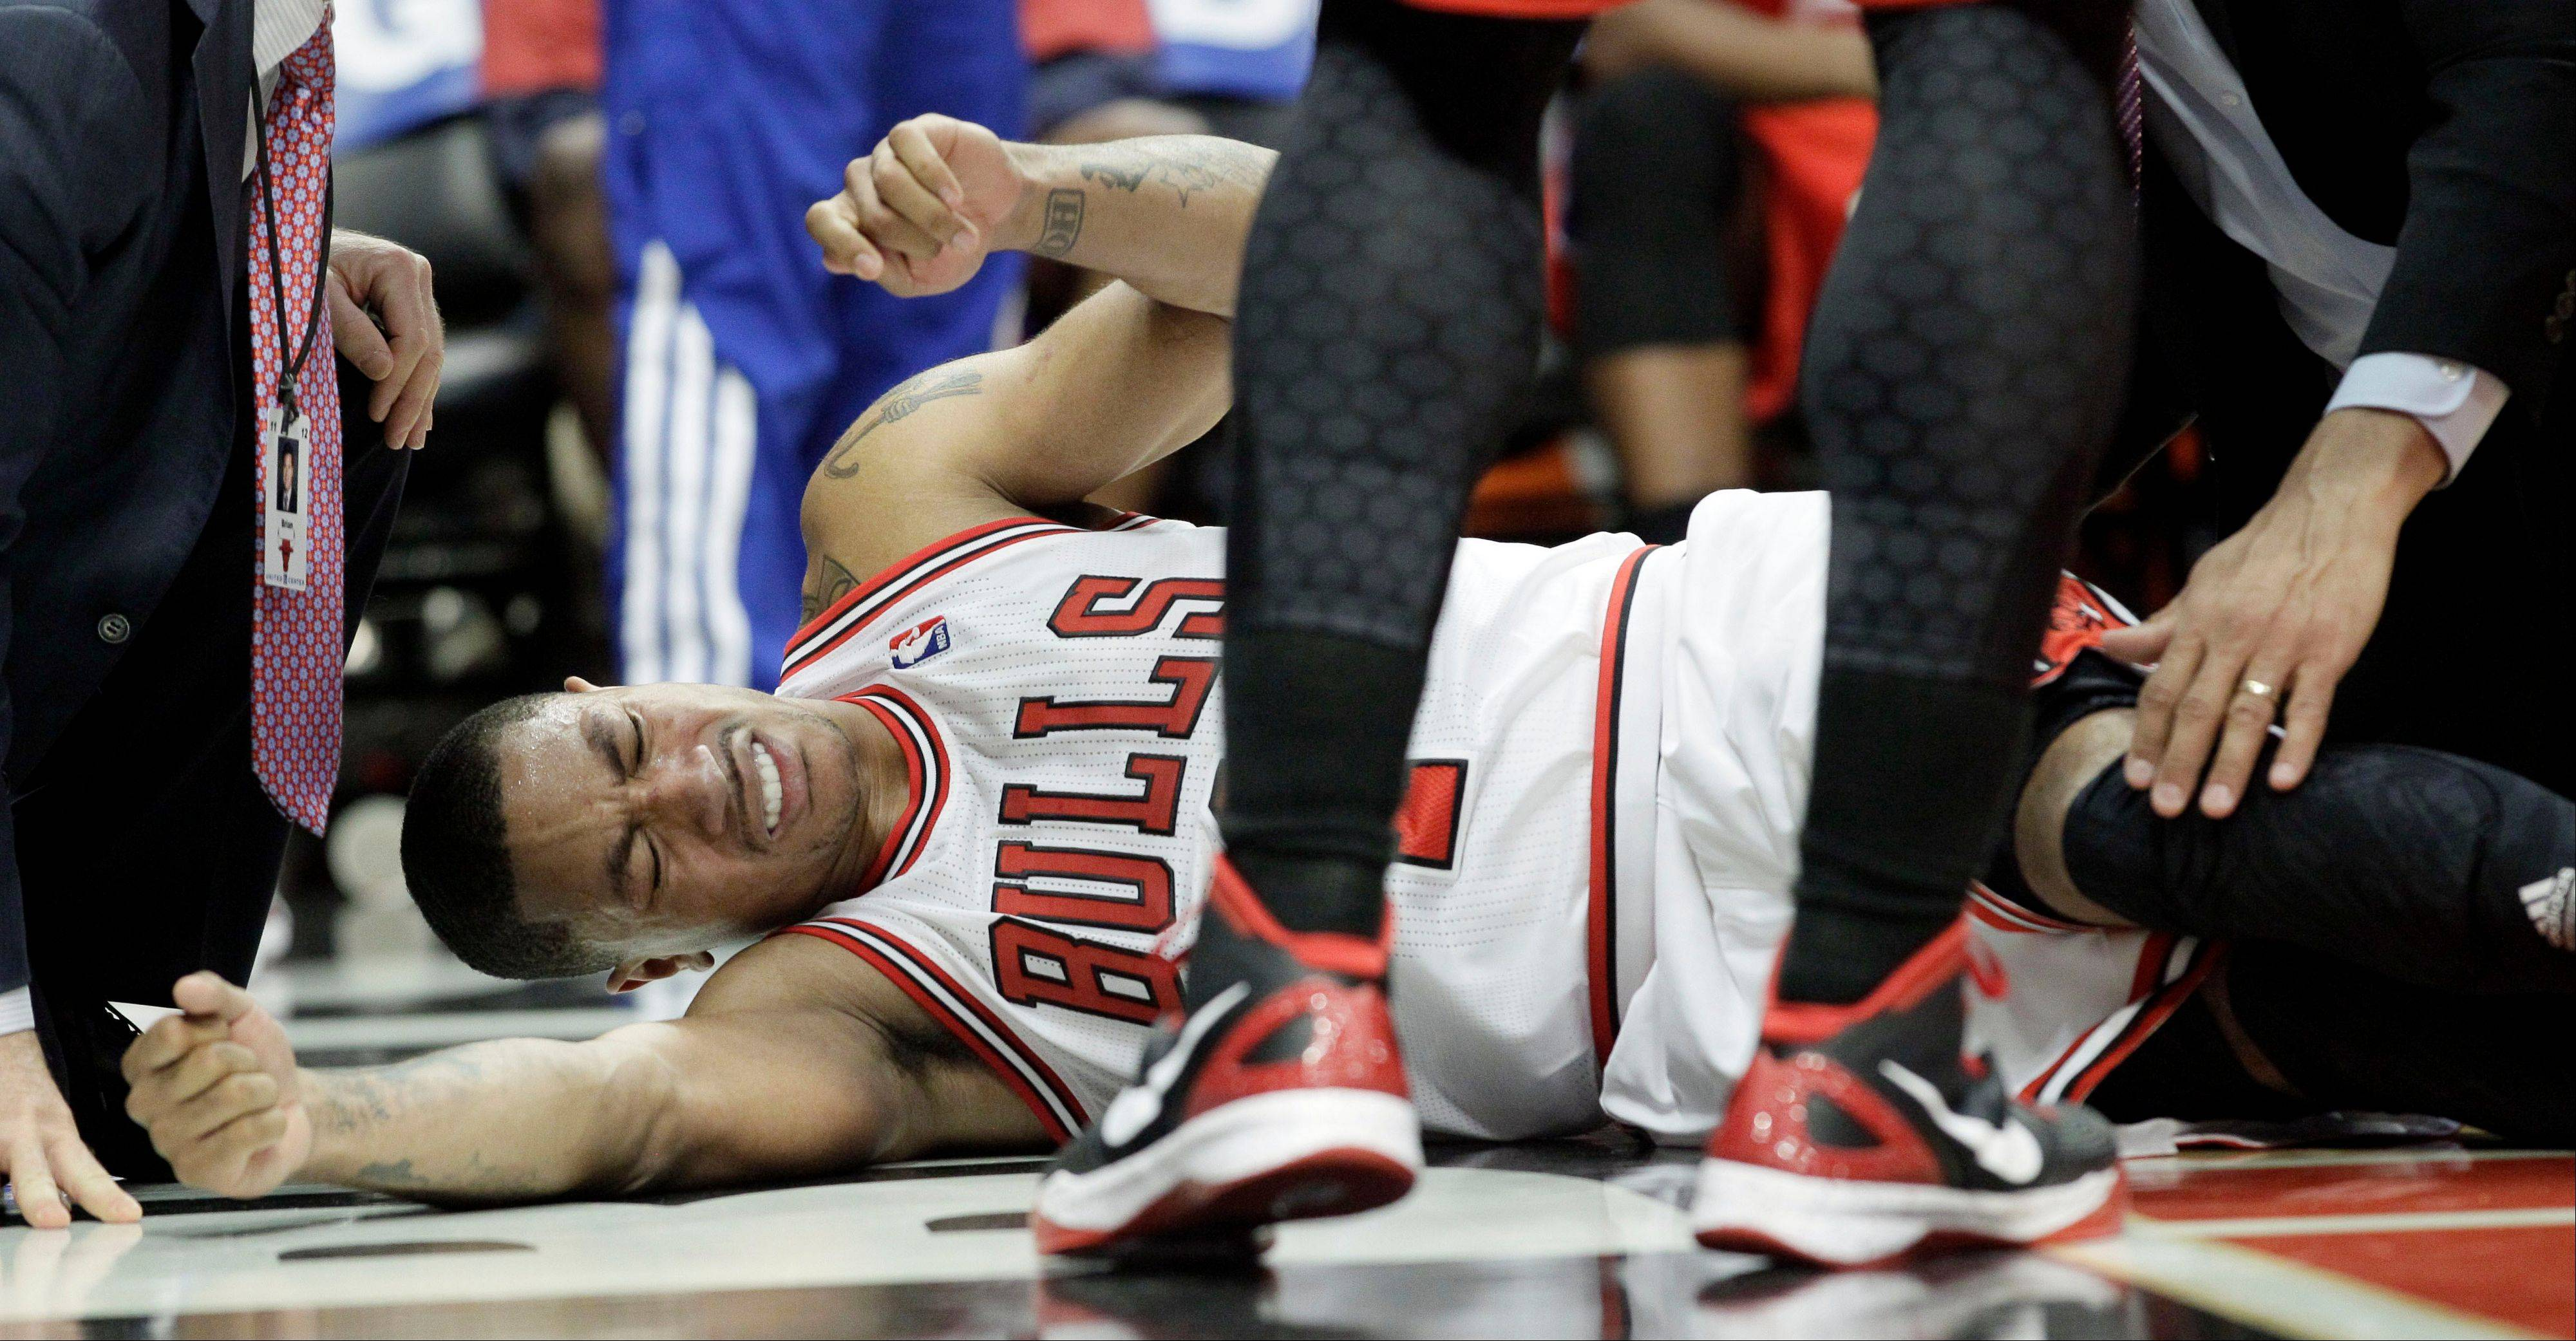 Rose's injury not common in NBA